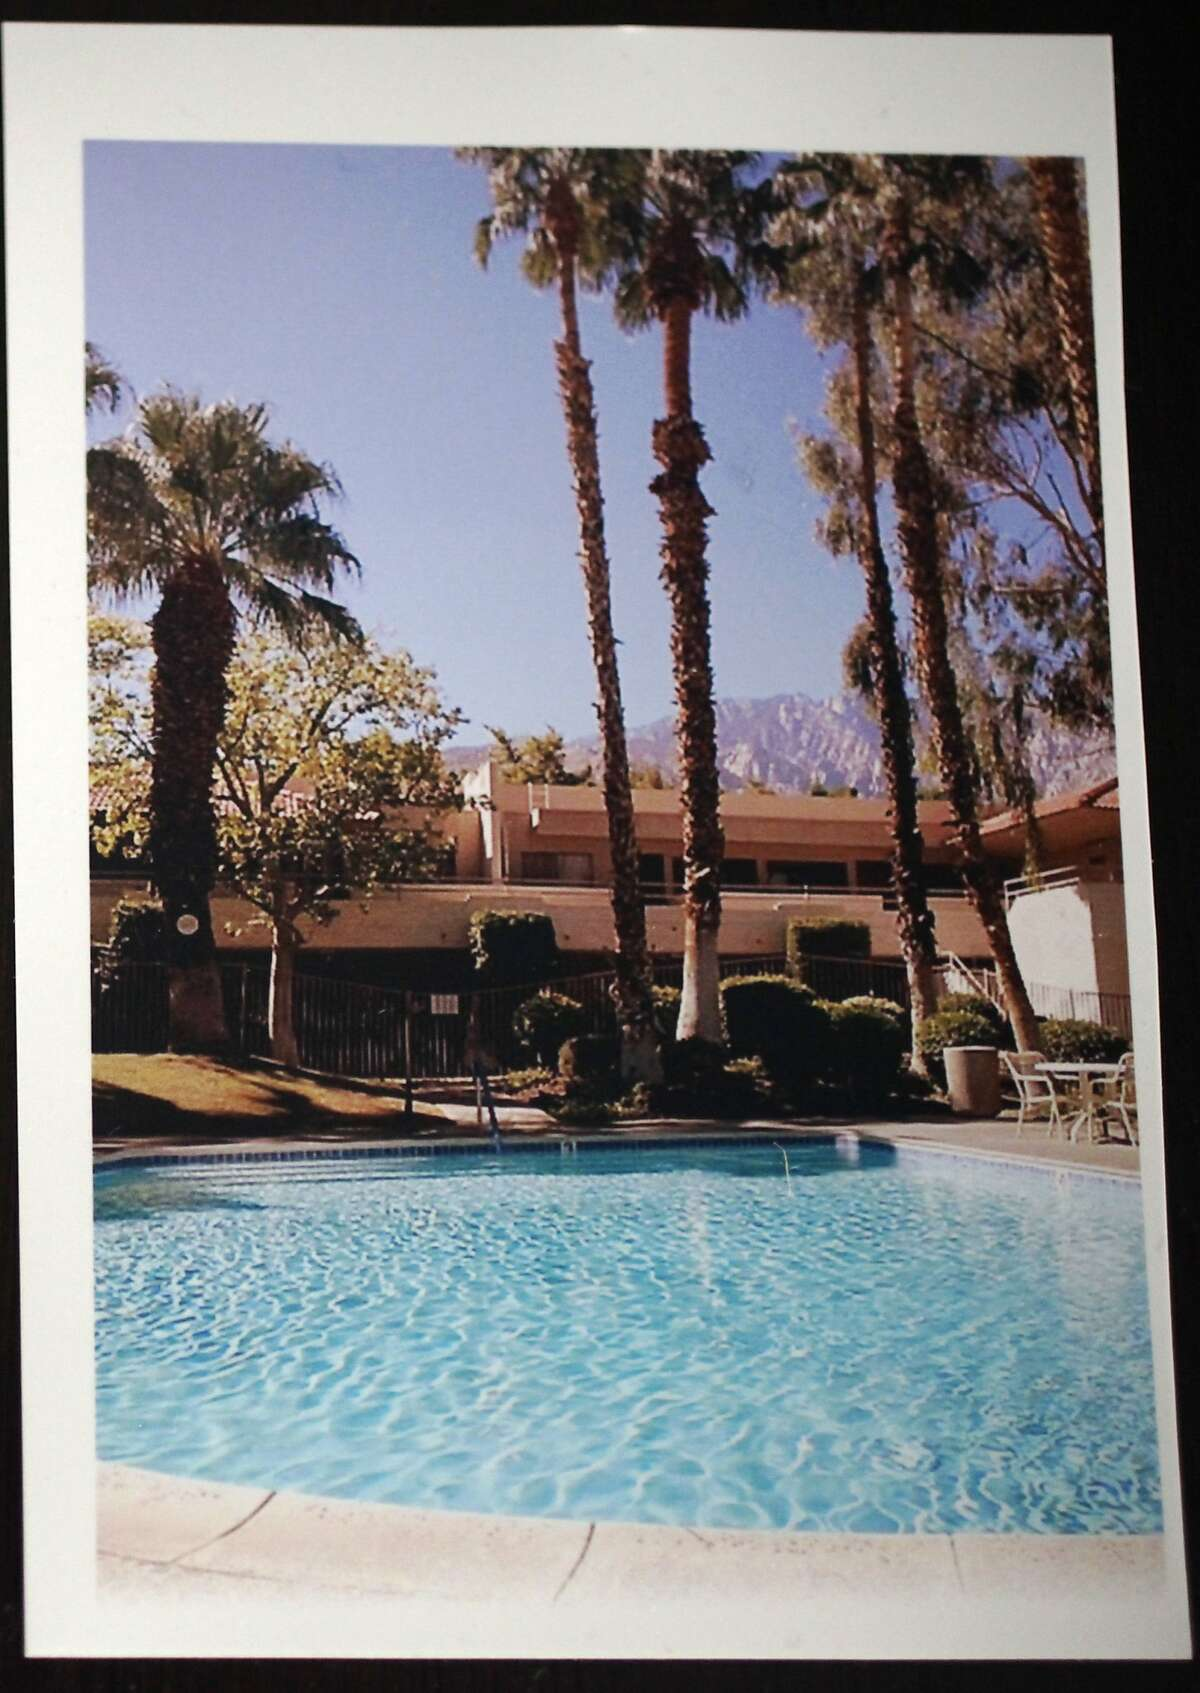 A photograph of a pool near Cory Tschogl's Palm Spring's home taken in the last year. Tschogl, who is a vision rehab therapist, wanted to purchase property, but couldn't afford anything in San Francisco, so she bought a 600 square foot, 1 bedroom place in Palm Springs in May, 2013. She spent about three months working with her father and sister doing interior remodeling work and had the place up on Airbnb by early fall. Her home was reserved by a man and his brother from May 25-July 8, 2014. After staying at her home for 30 days, the client suddenly stopped paying. On the day that the reservation was up, Tschogl sent him a message telling him he had 24 hours to leave before she turned off the power. The man refused to leave and threatened to take legal action against her over various claimed damages, including health problems from drinking the tap water. Because he has been in her home for 30 days, he has tenant rights under California tenant law. Tschogl is now in the eviction process, which could take months and cost her thousands of dollars.